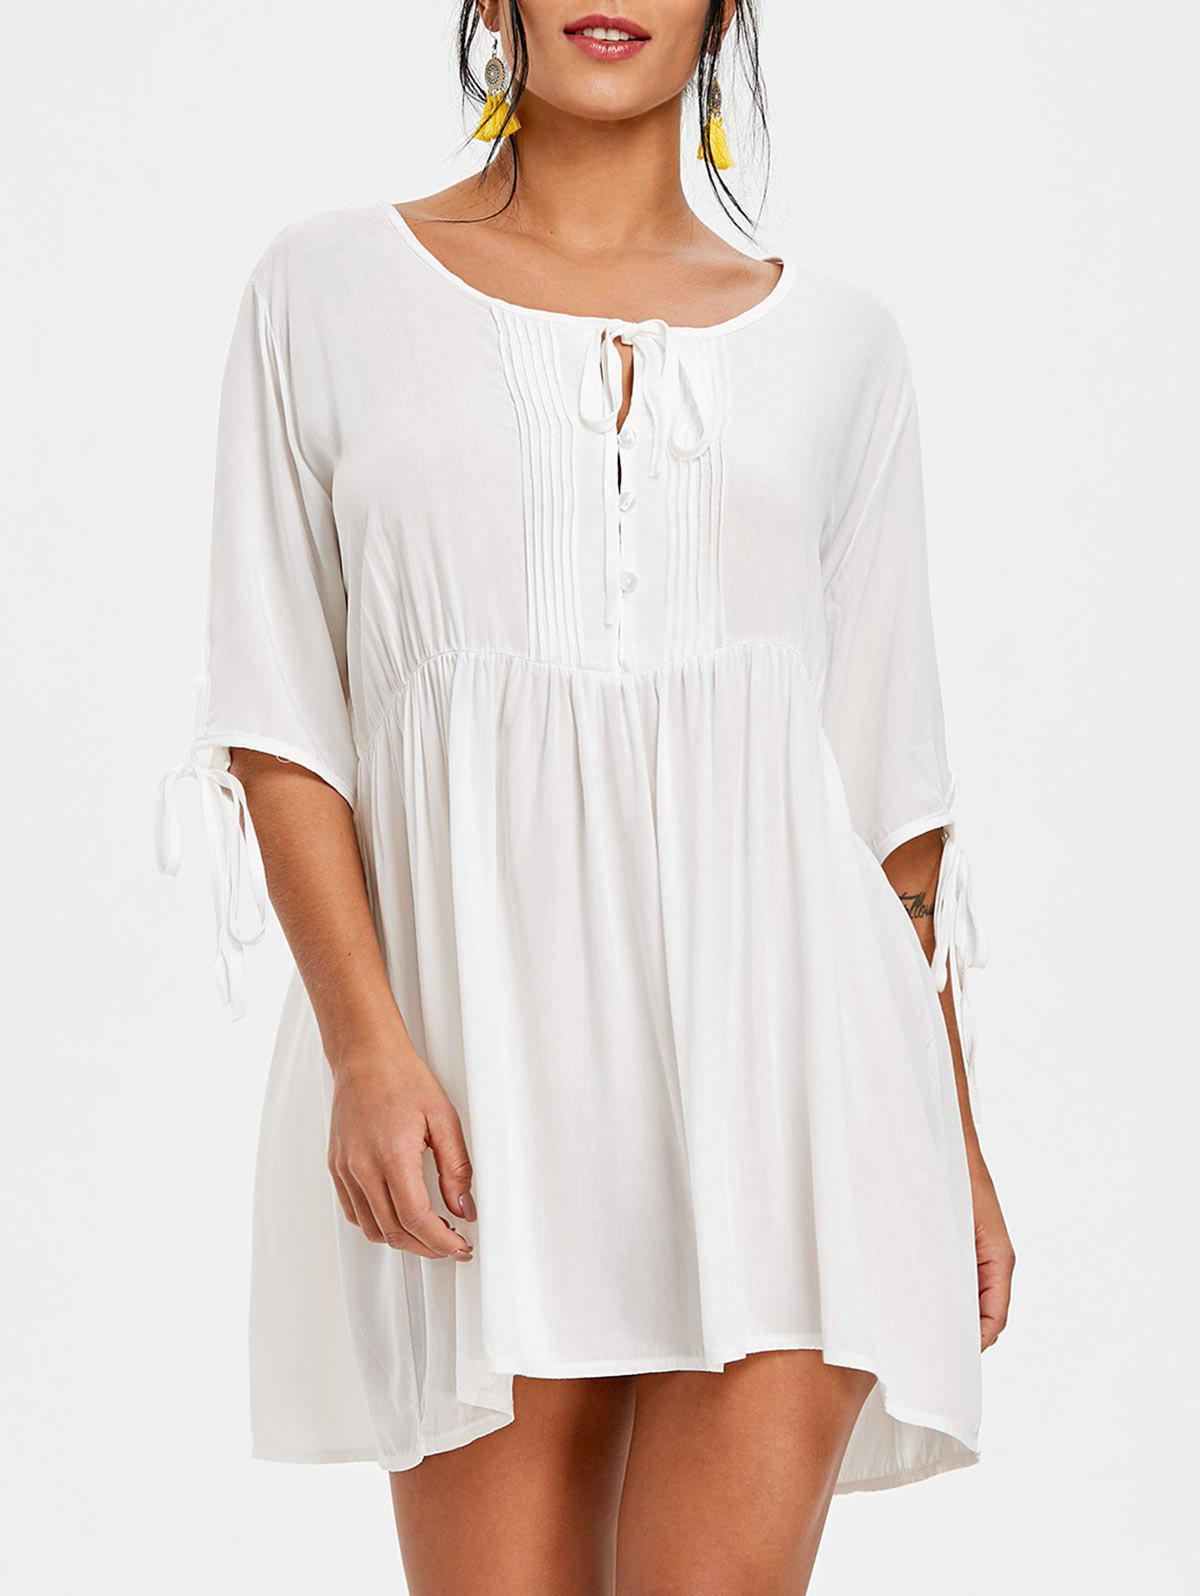 High Waisted Pintuck Shift Dress - WHITE S